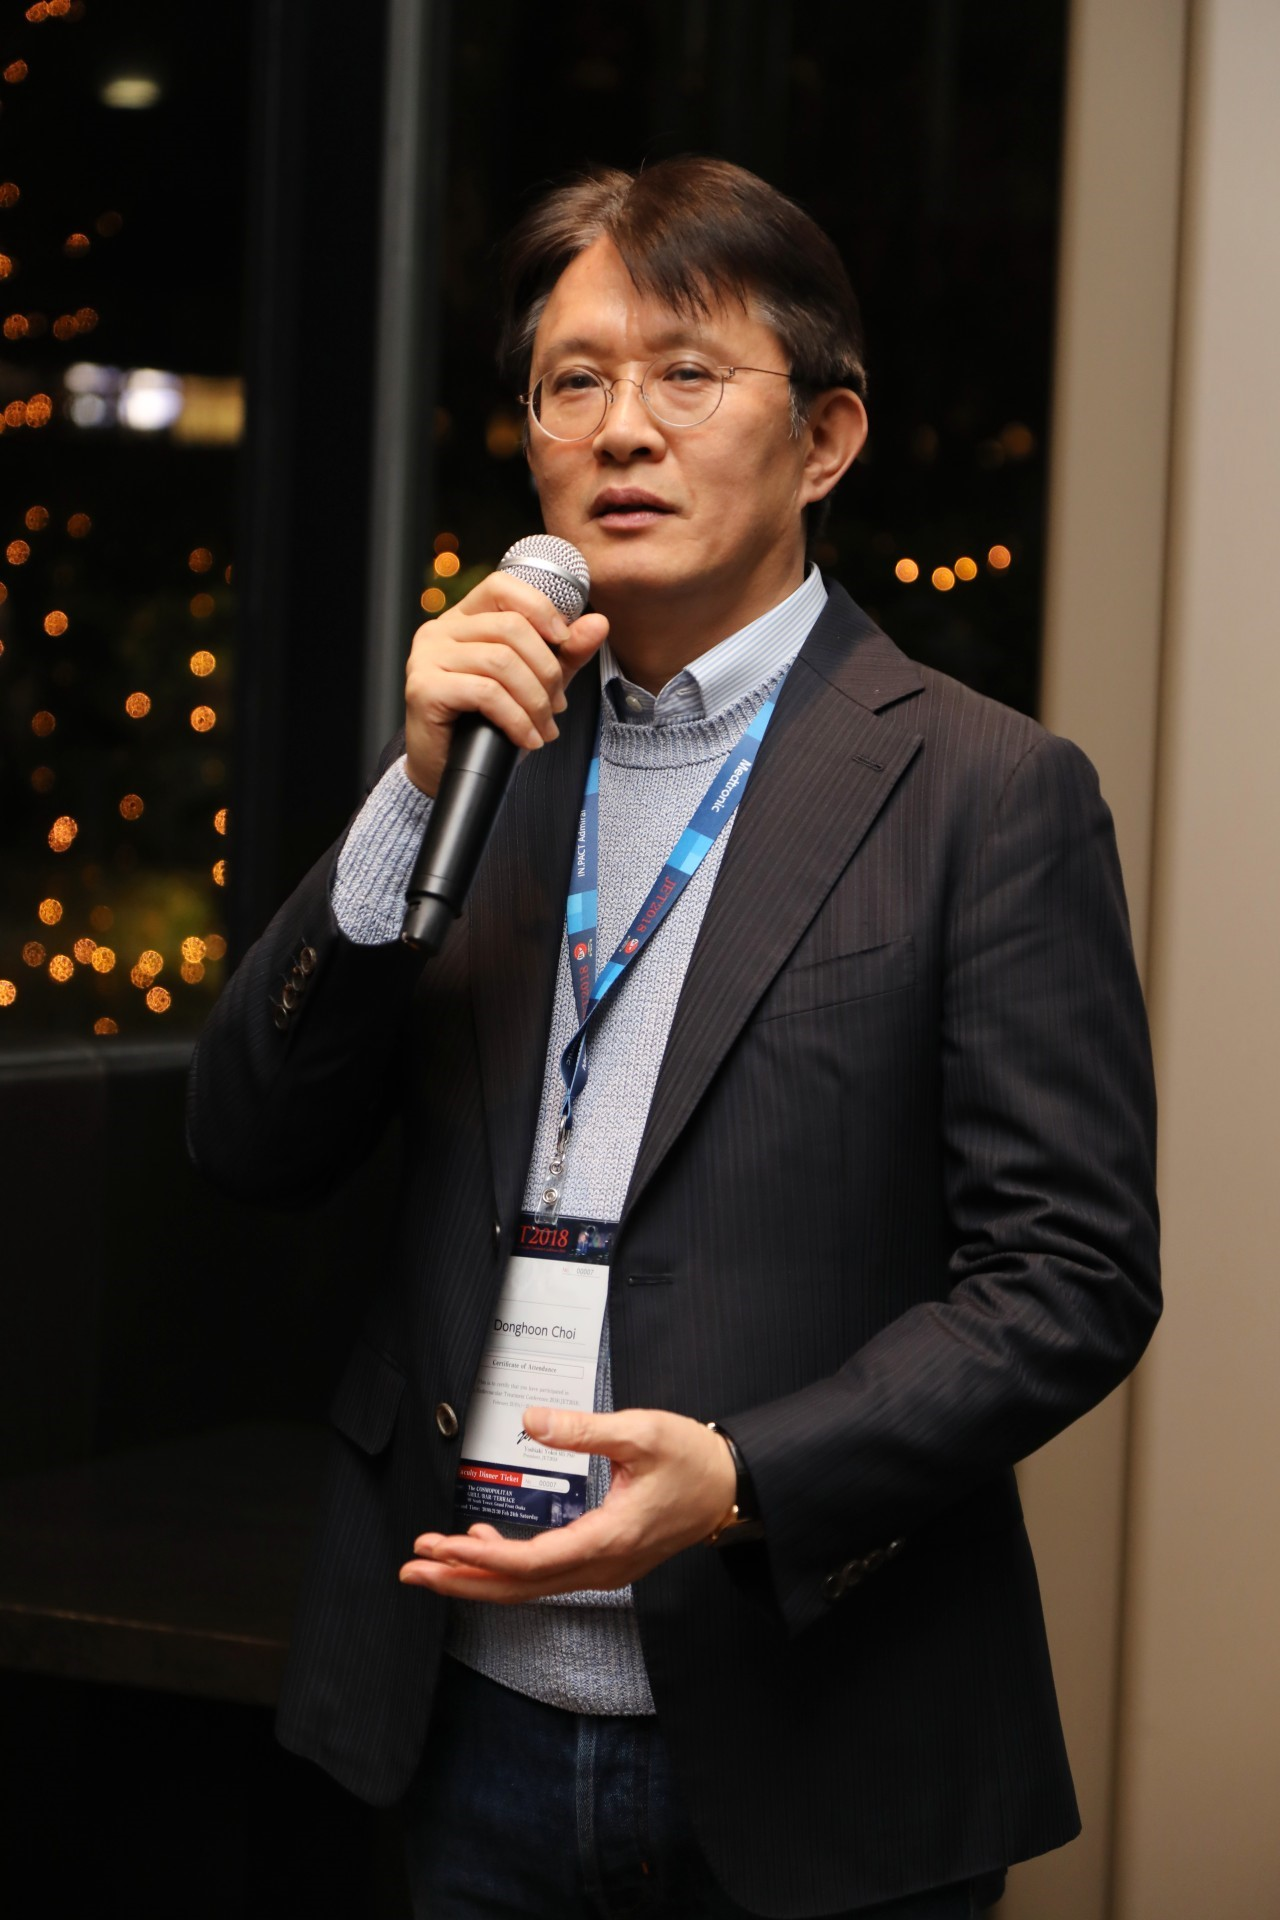 Photo of Donghoon Choi